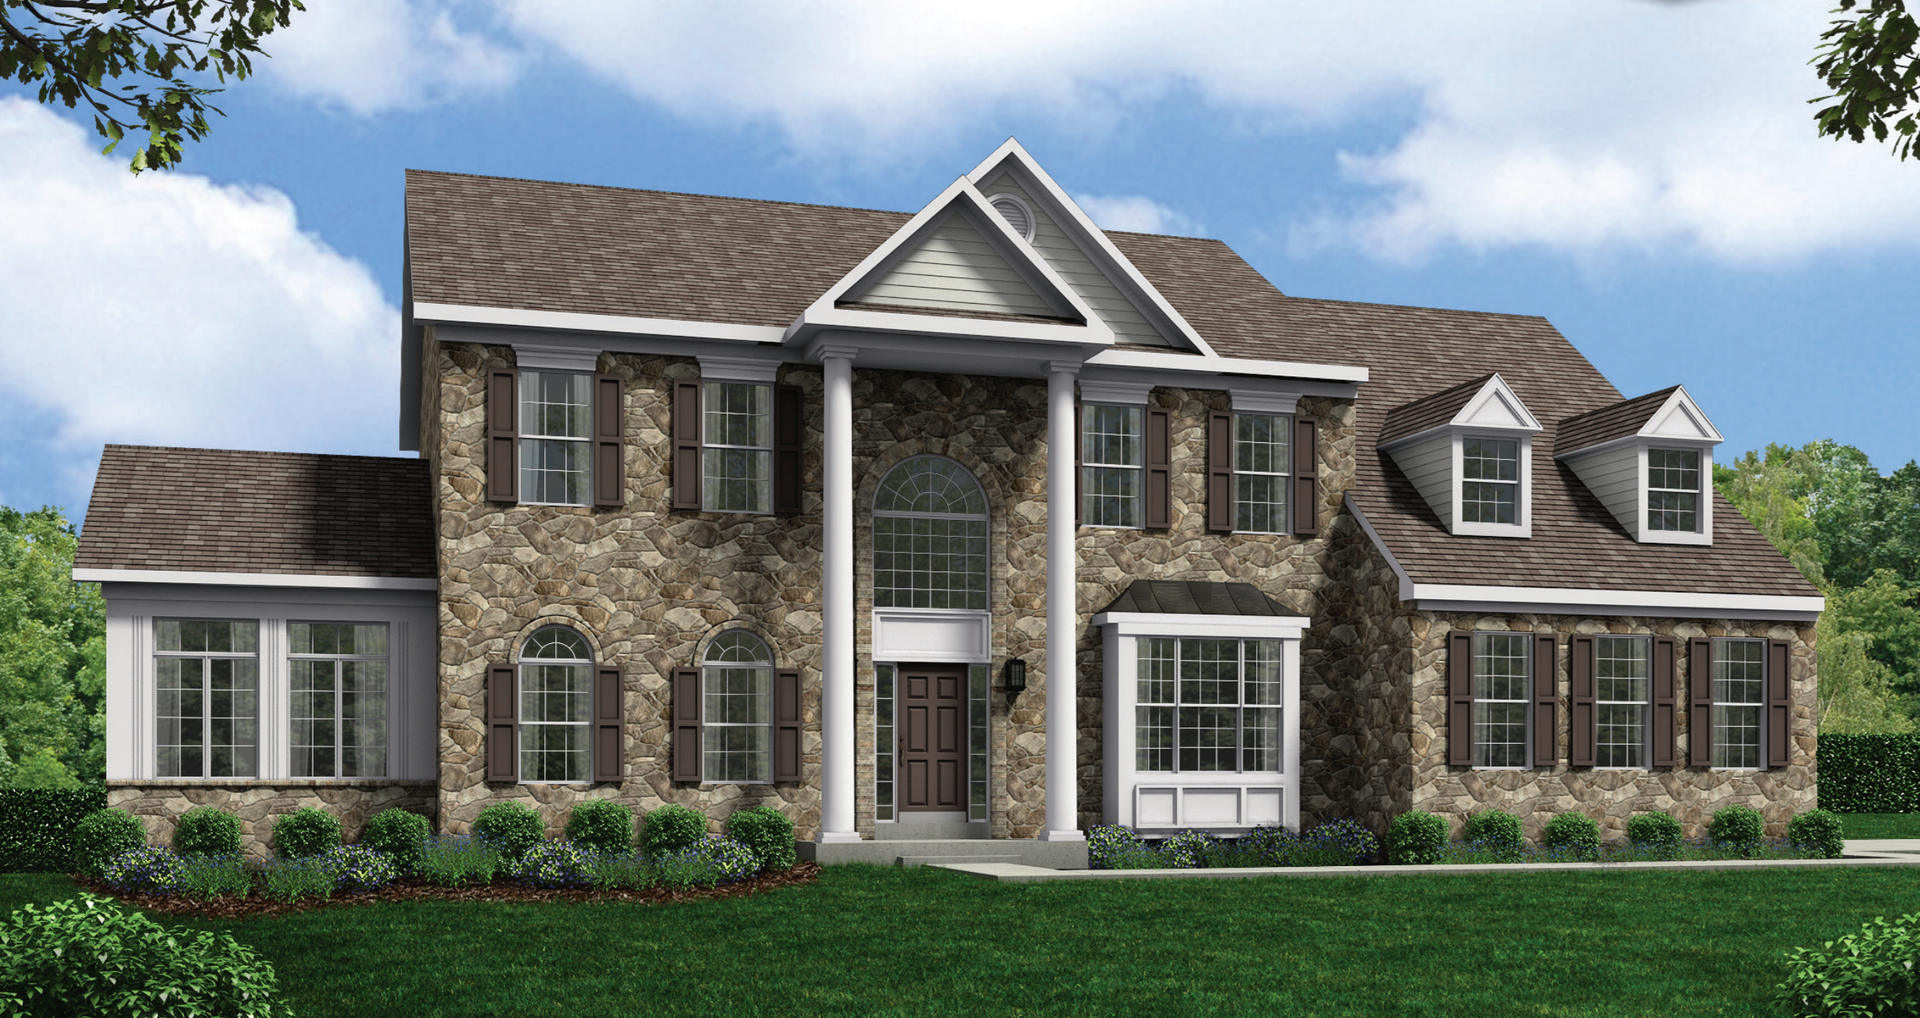 Kingsport New Home in Bowie